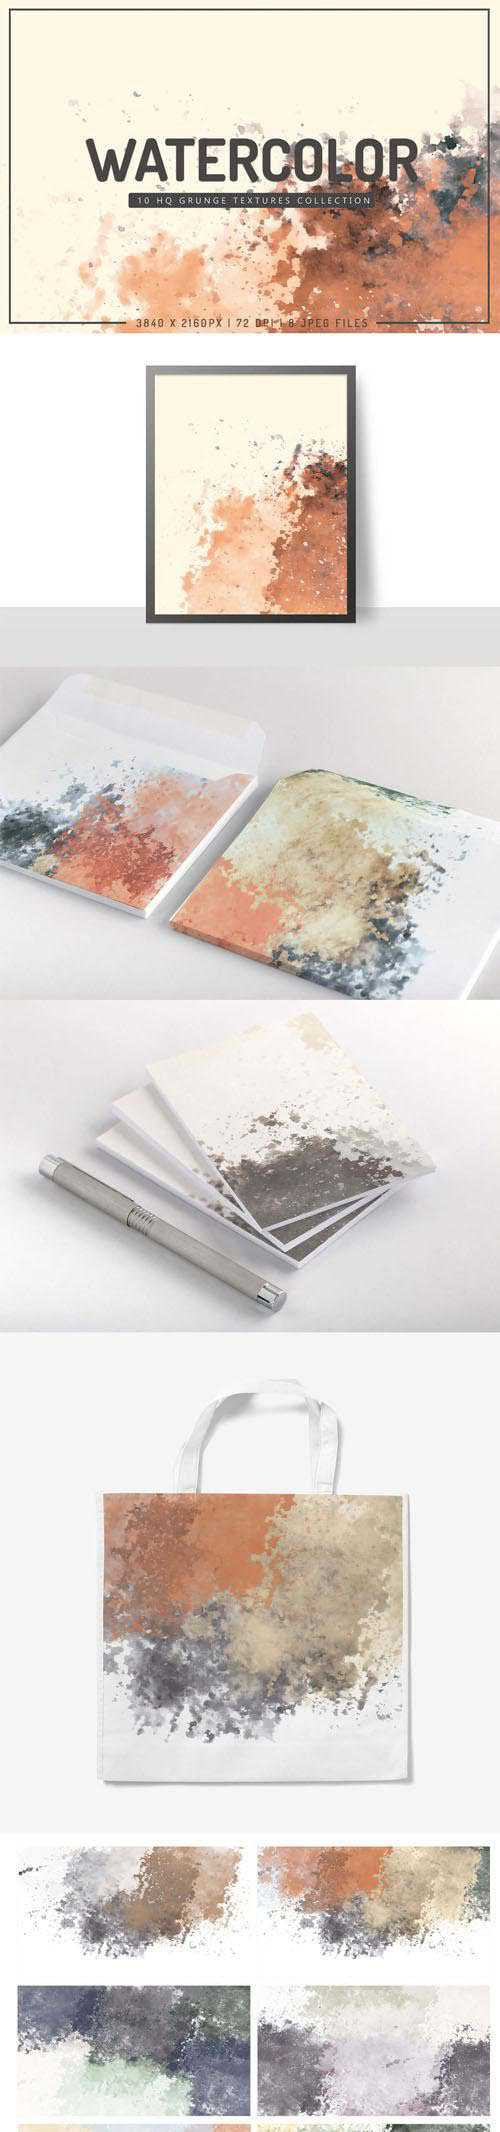 Watercolor – 10 HQ Grunge Textures Collection